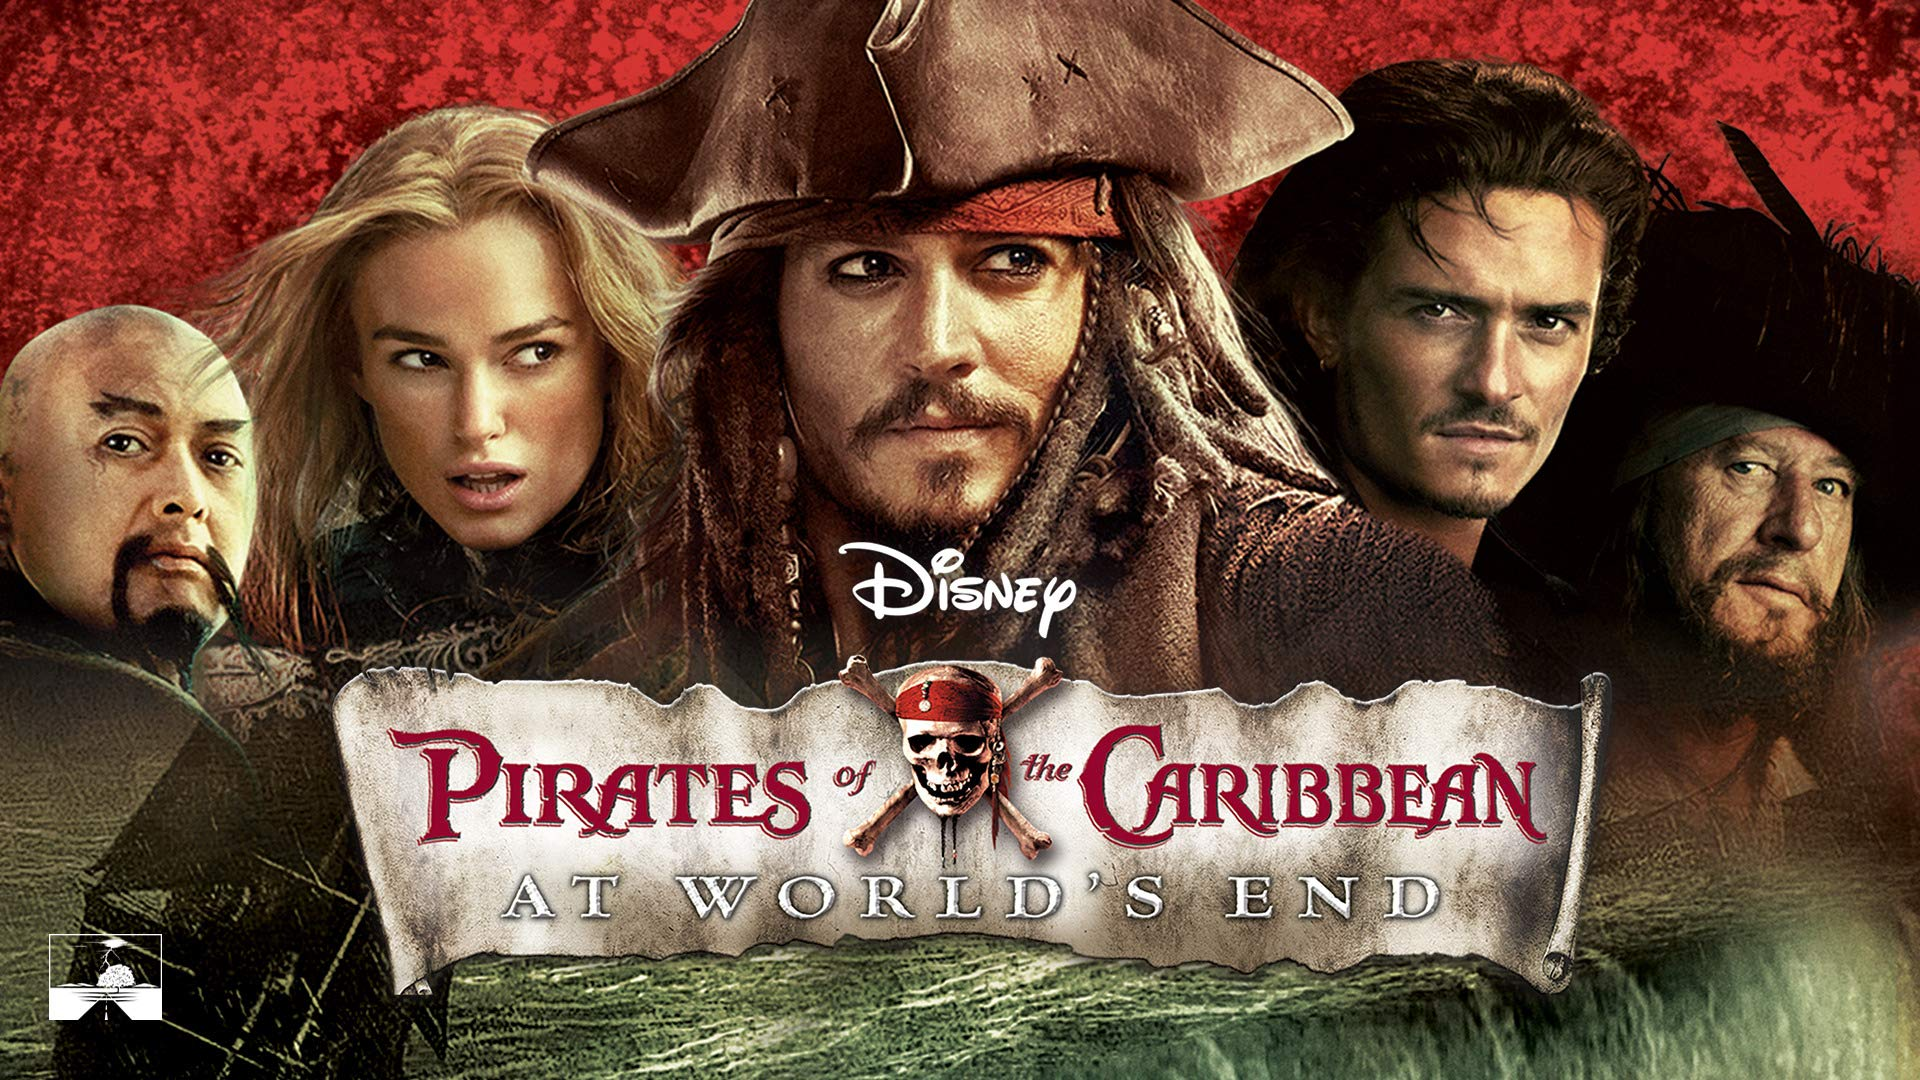 Pirates of the Caribbean: At World's End disappointing movies